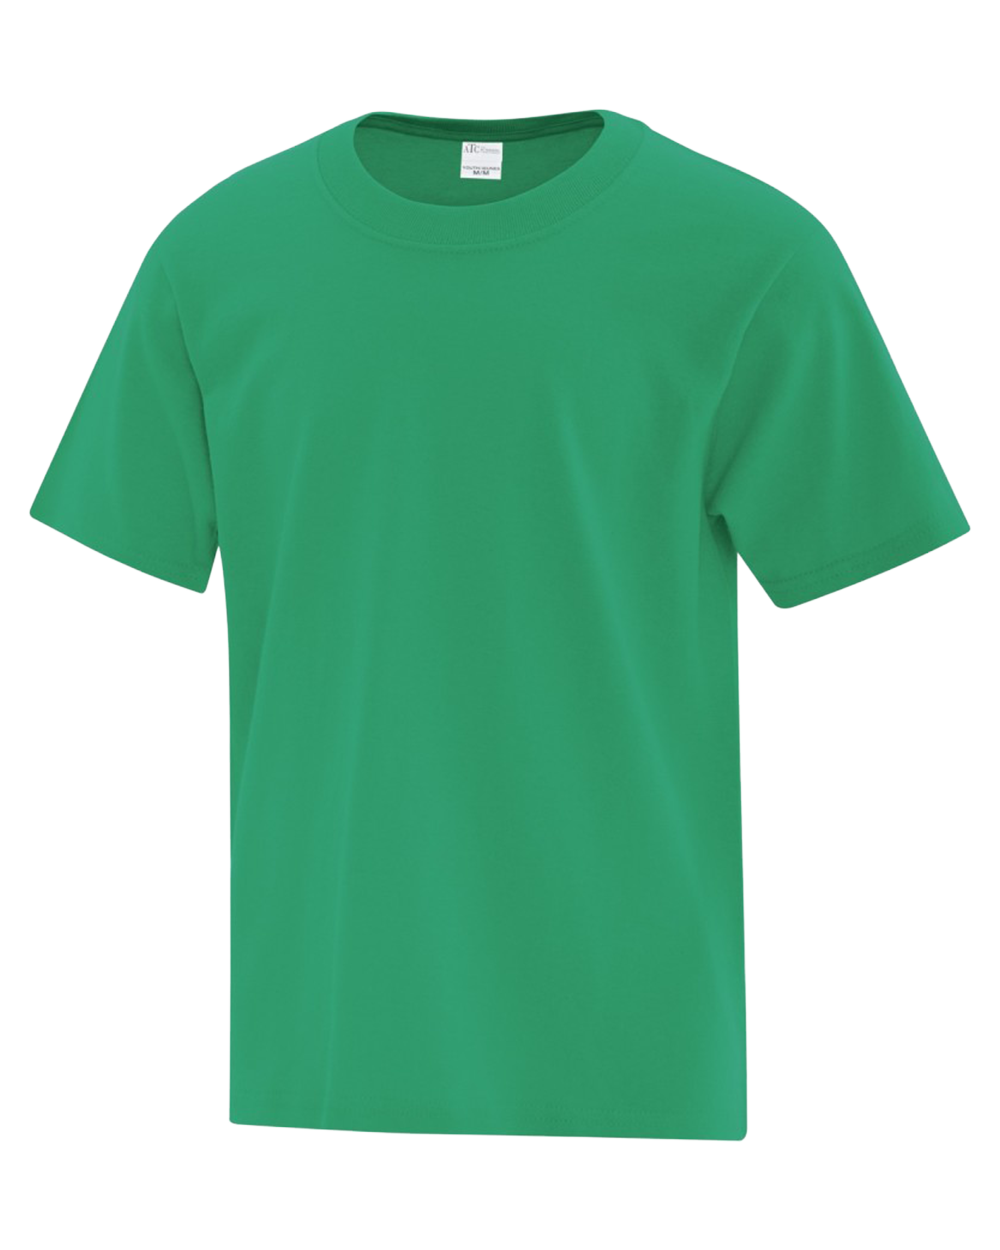 Everyday Cotton Youth T-Shirt